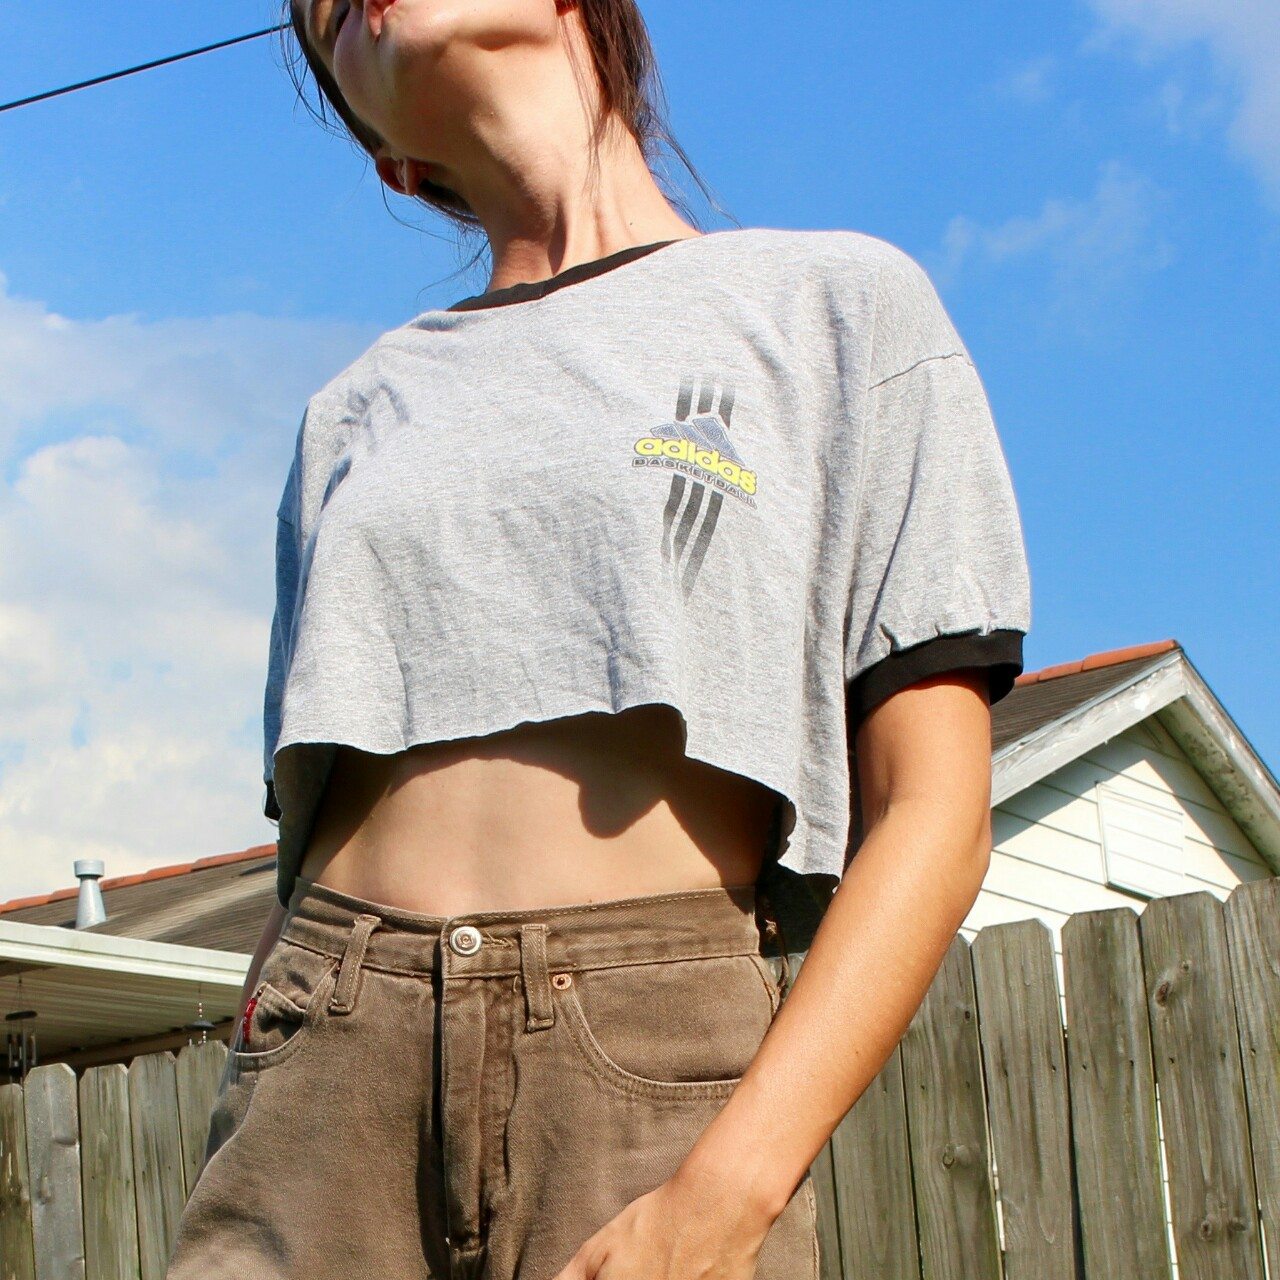 On Hold Oversized Vintage Cropped Adidas Jlynn